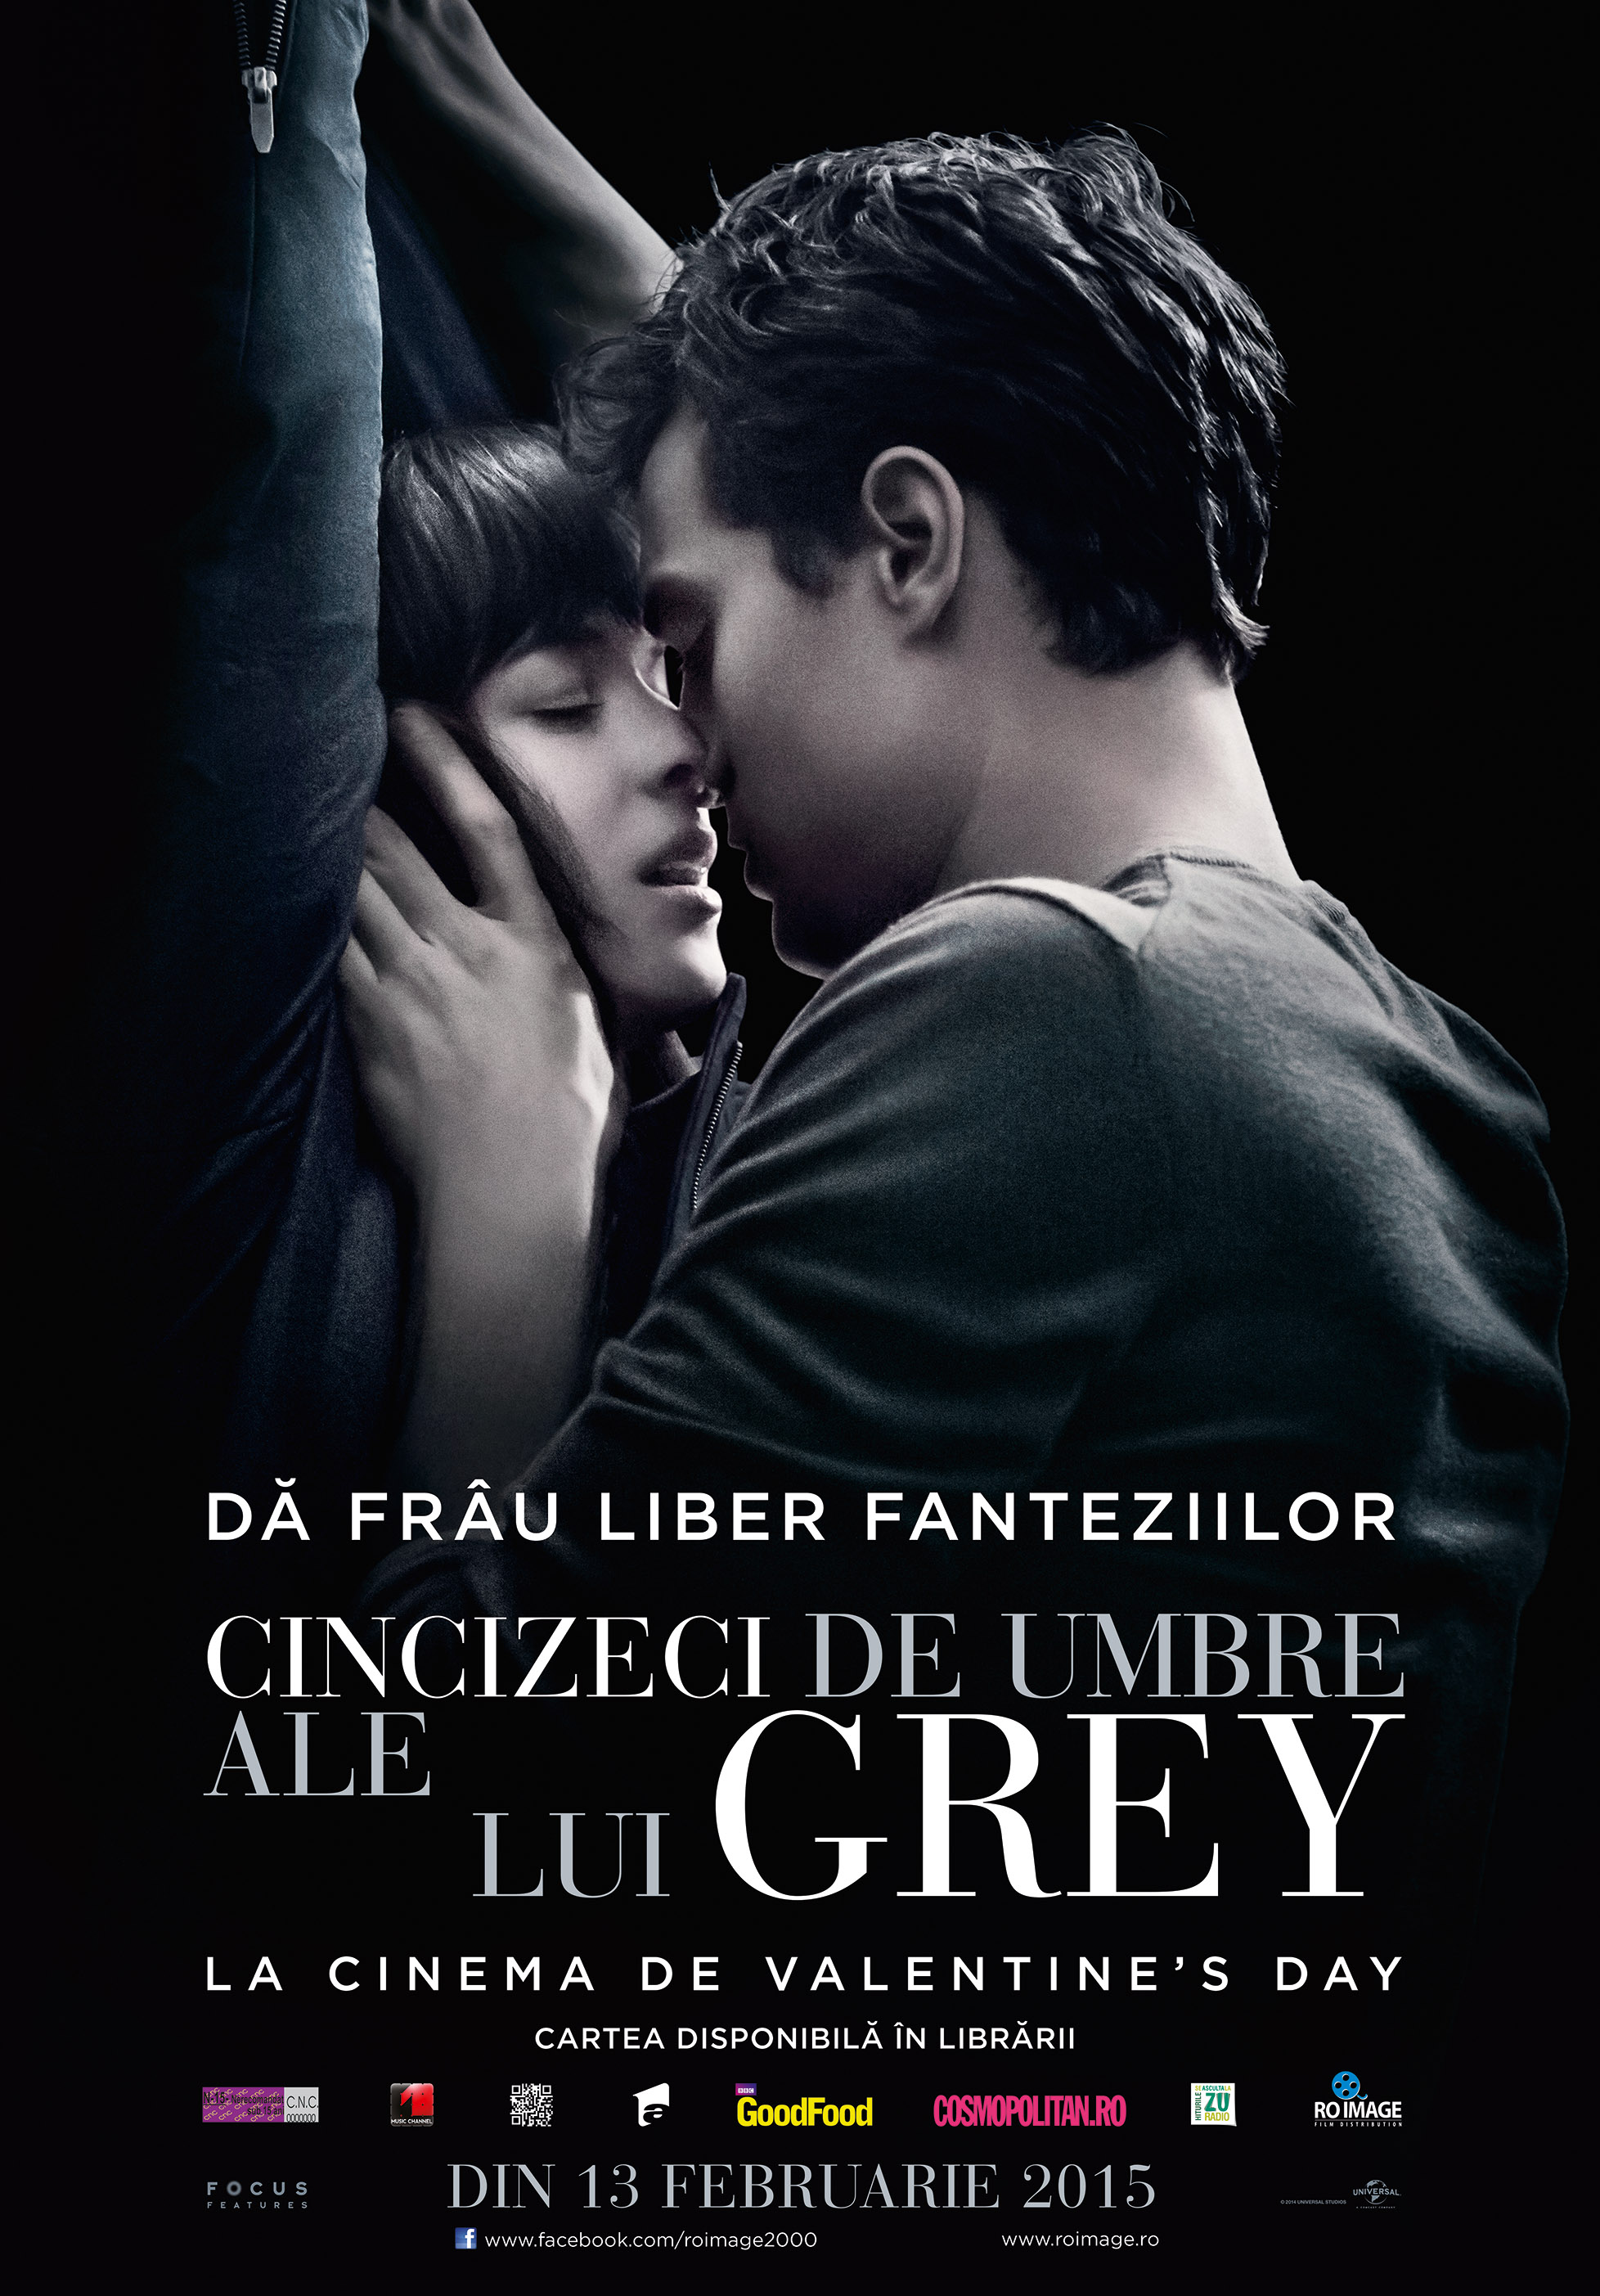 Cincizeci de umbre ale lui Grey / Fifty Shades of Grey